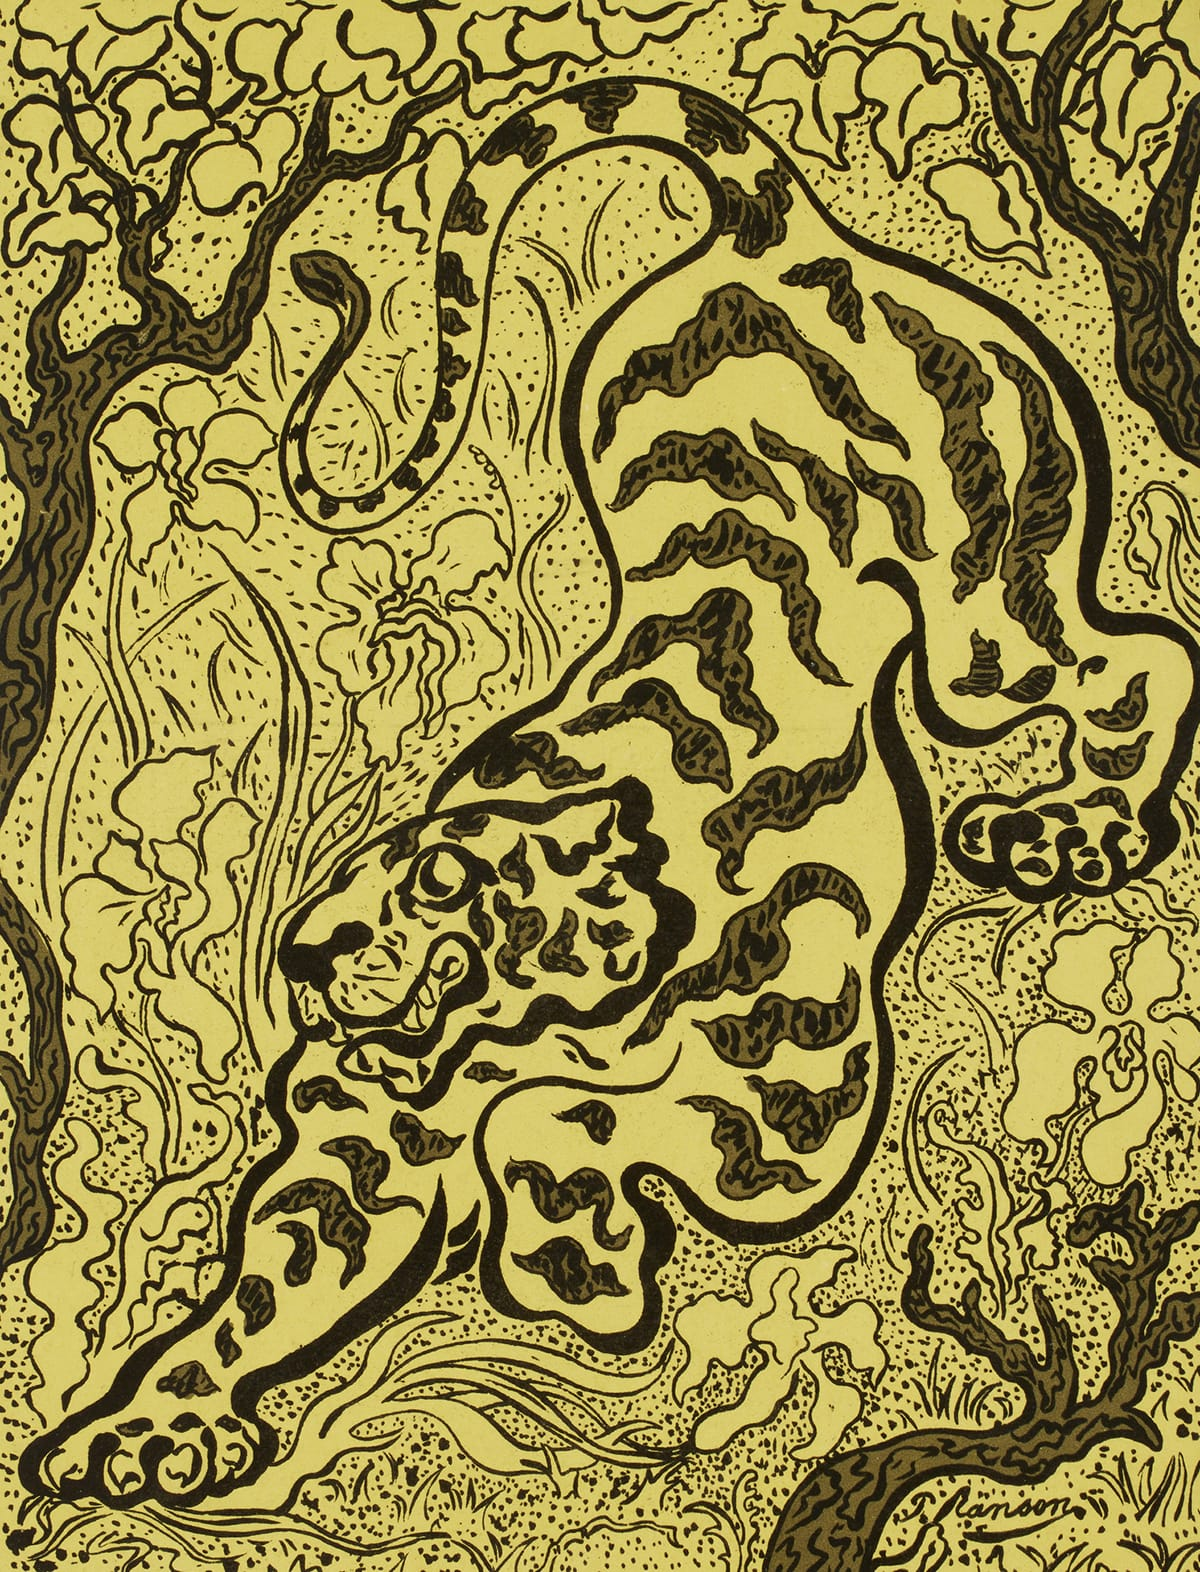 Vibrant yellow background with playful black lines depicting a tiger amidst flora ready to pounce.